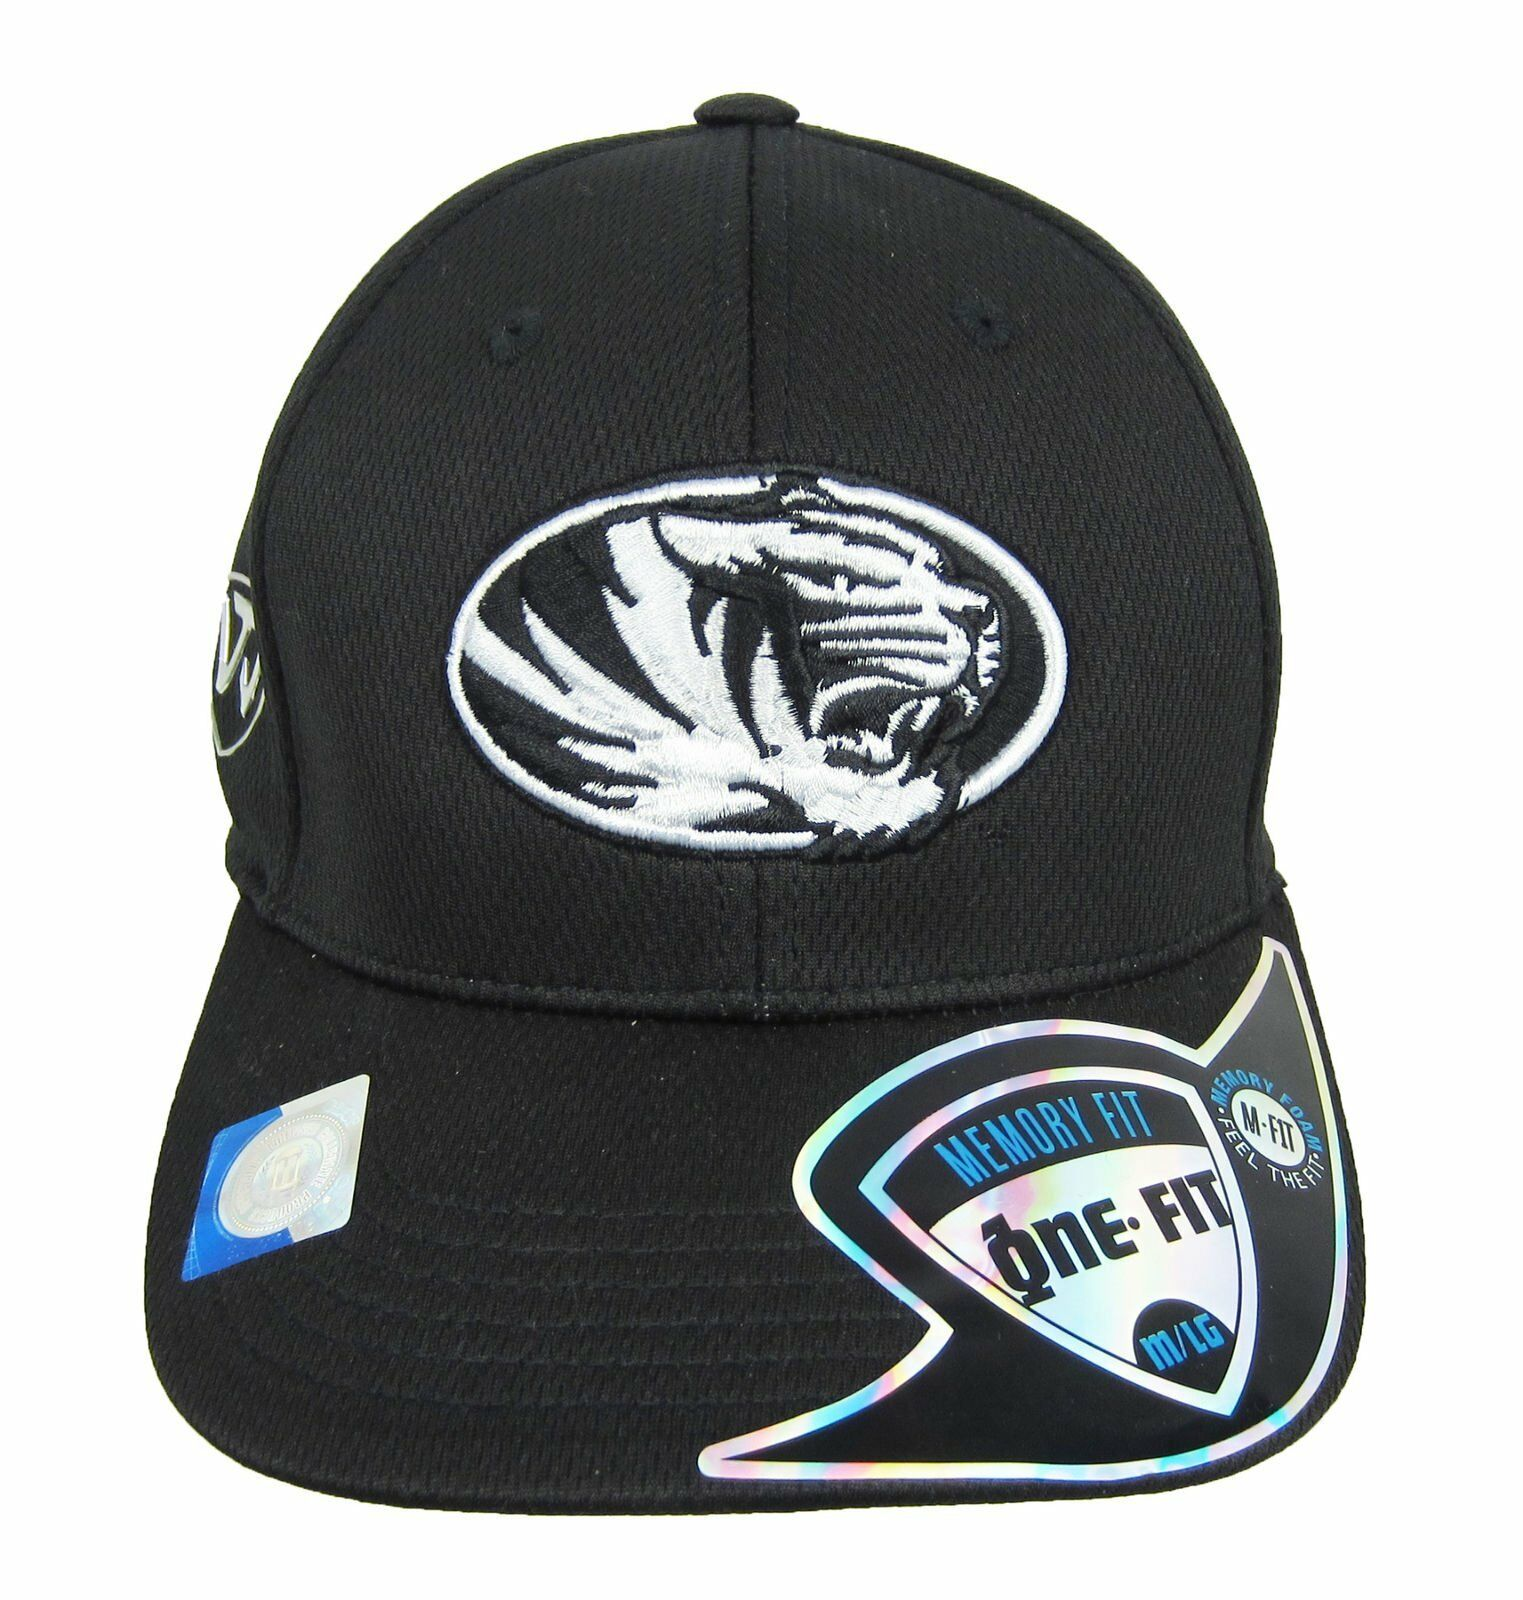 wholesale dealer 43edd 61fc7 ... italy top of the world mens ncaa missouri tigers hat one size fit all hat  tigers